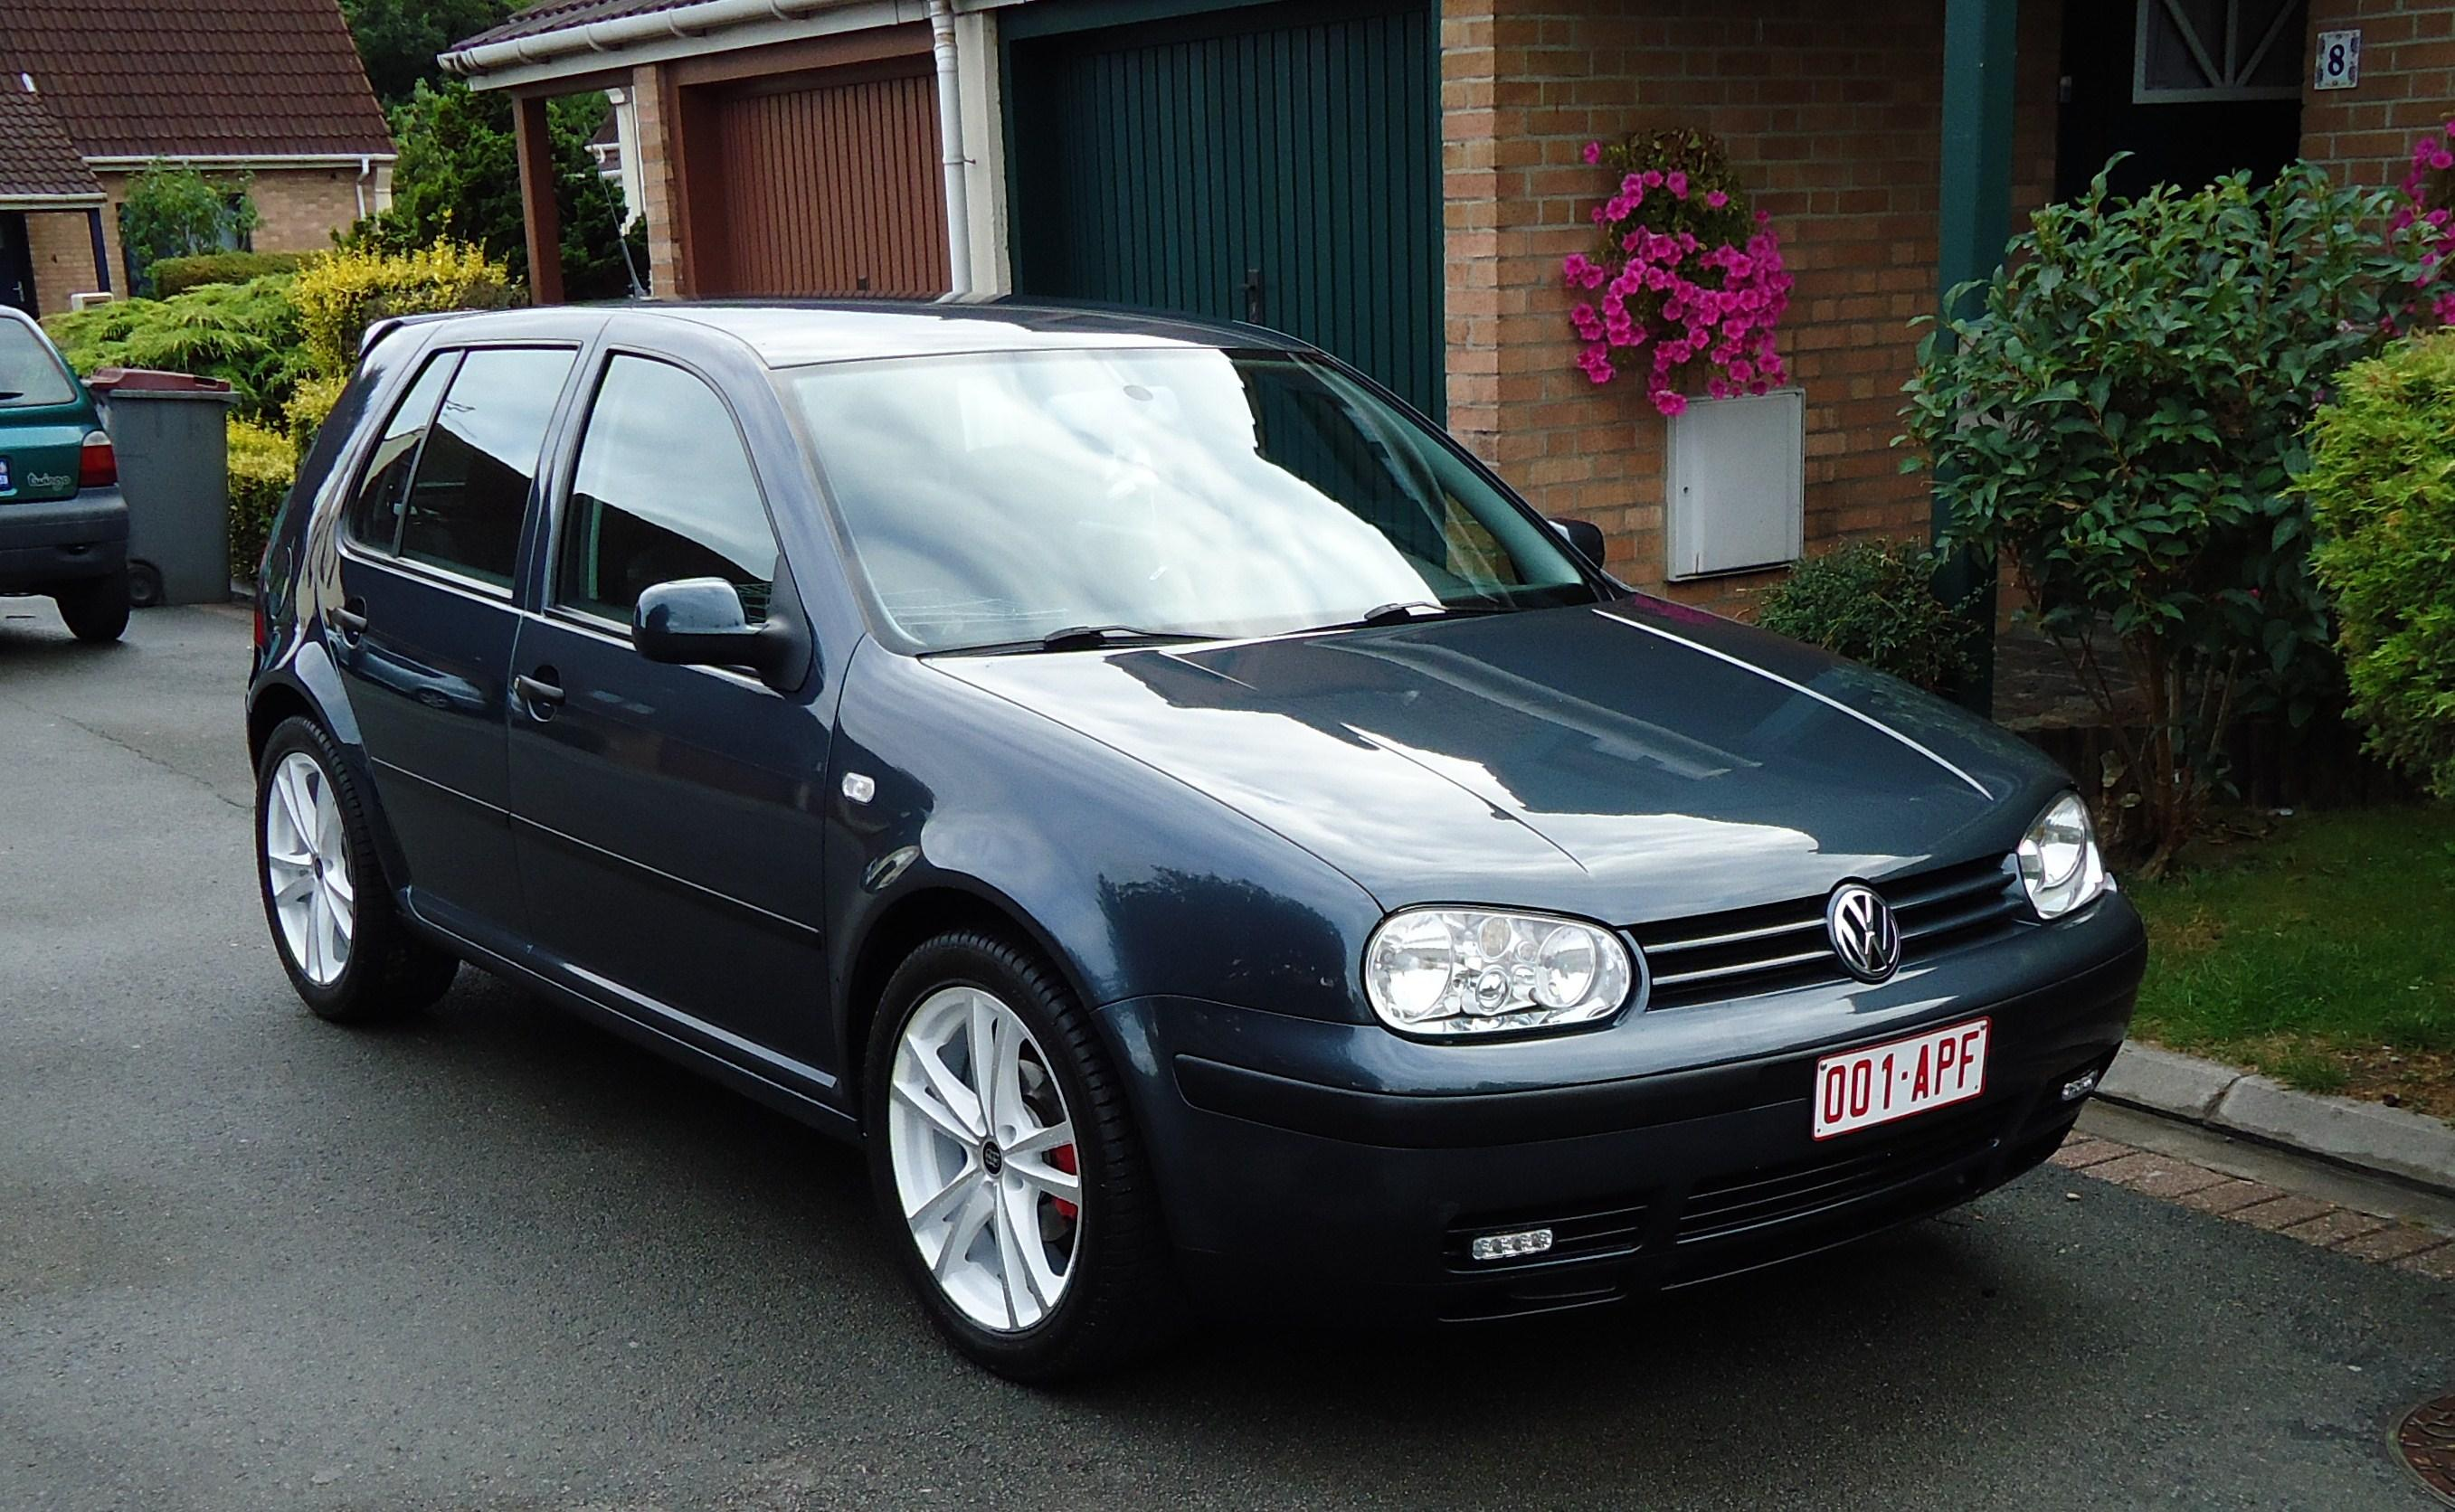 Golf iv 1 4 16v de jiloute018 garage des golf iv 1 4 16v for Garage delbar vw mouscron